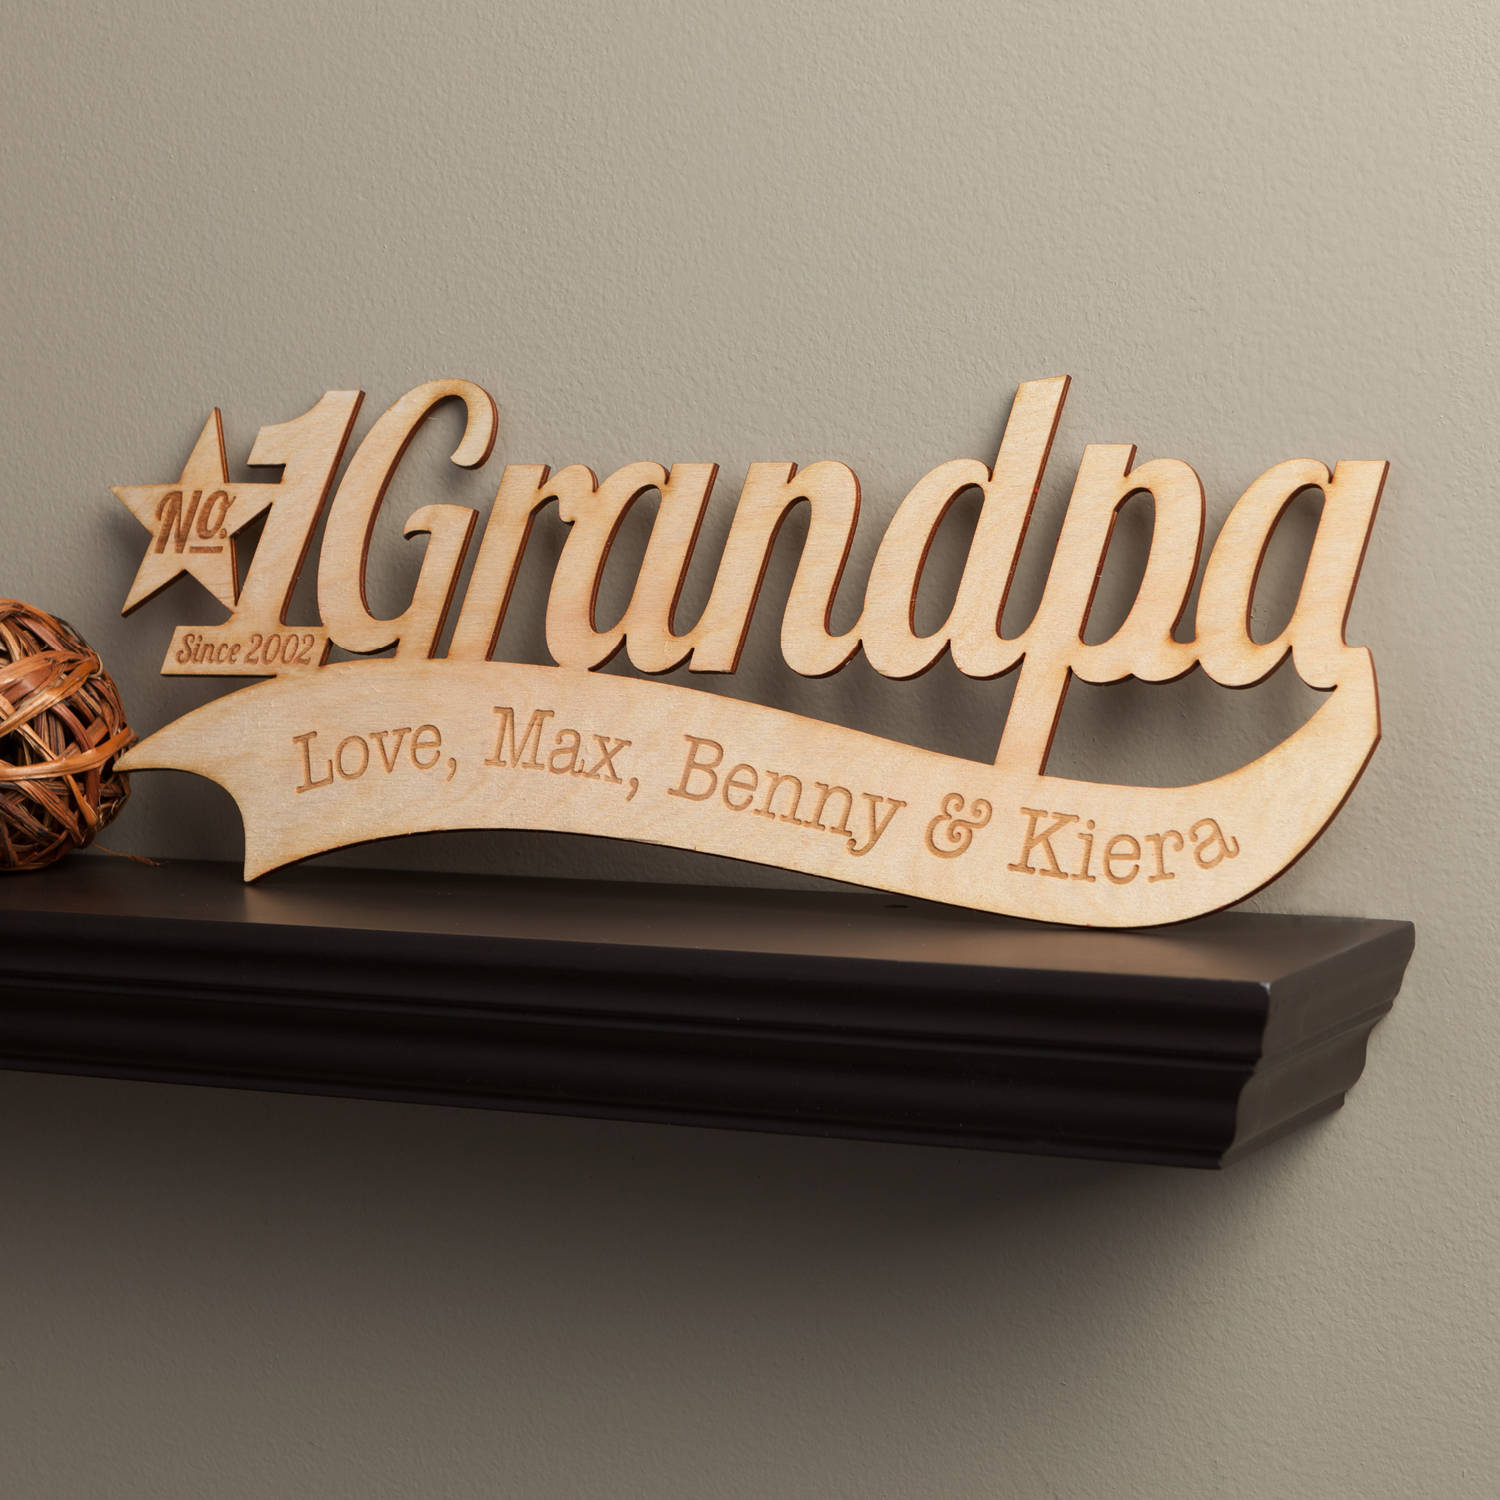 Number One Grandpa Personalized Wood Plaque